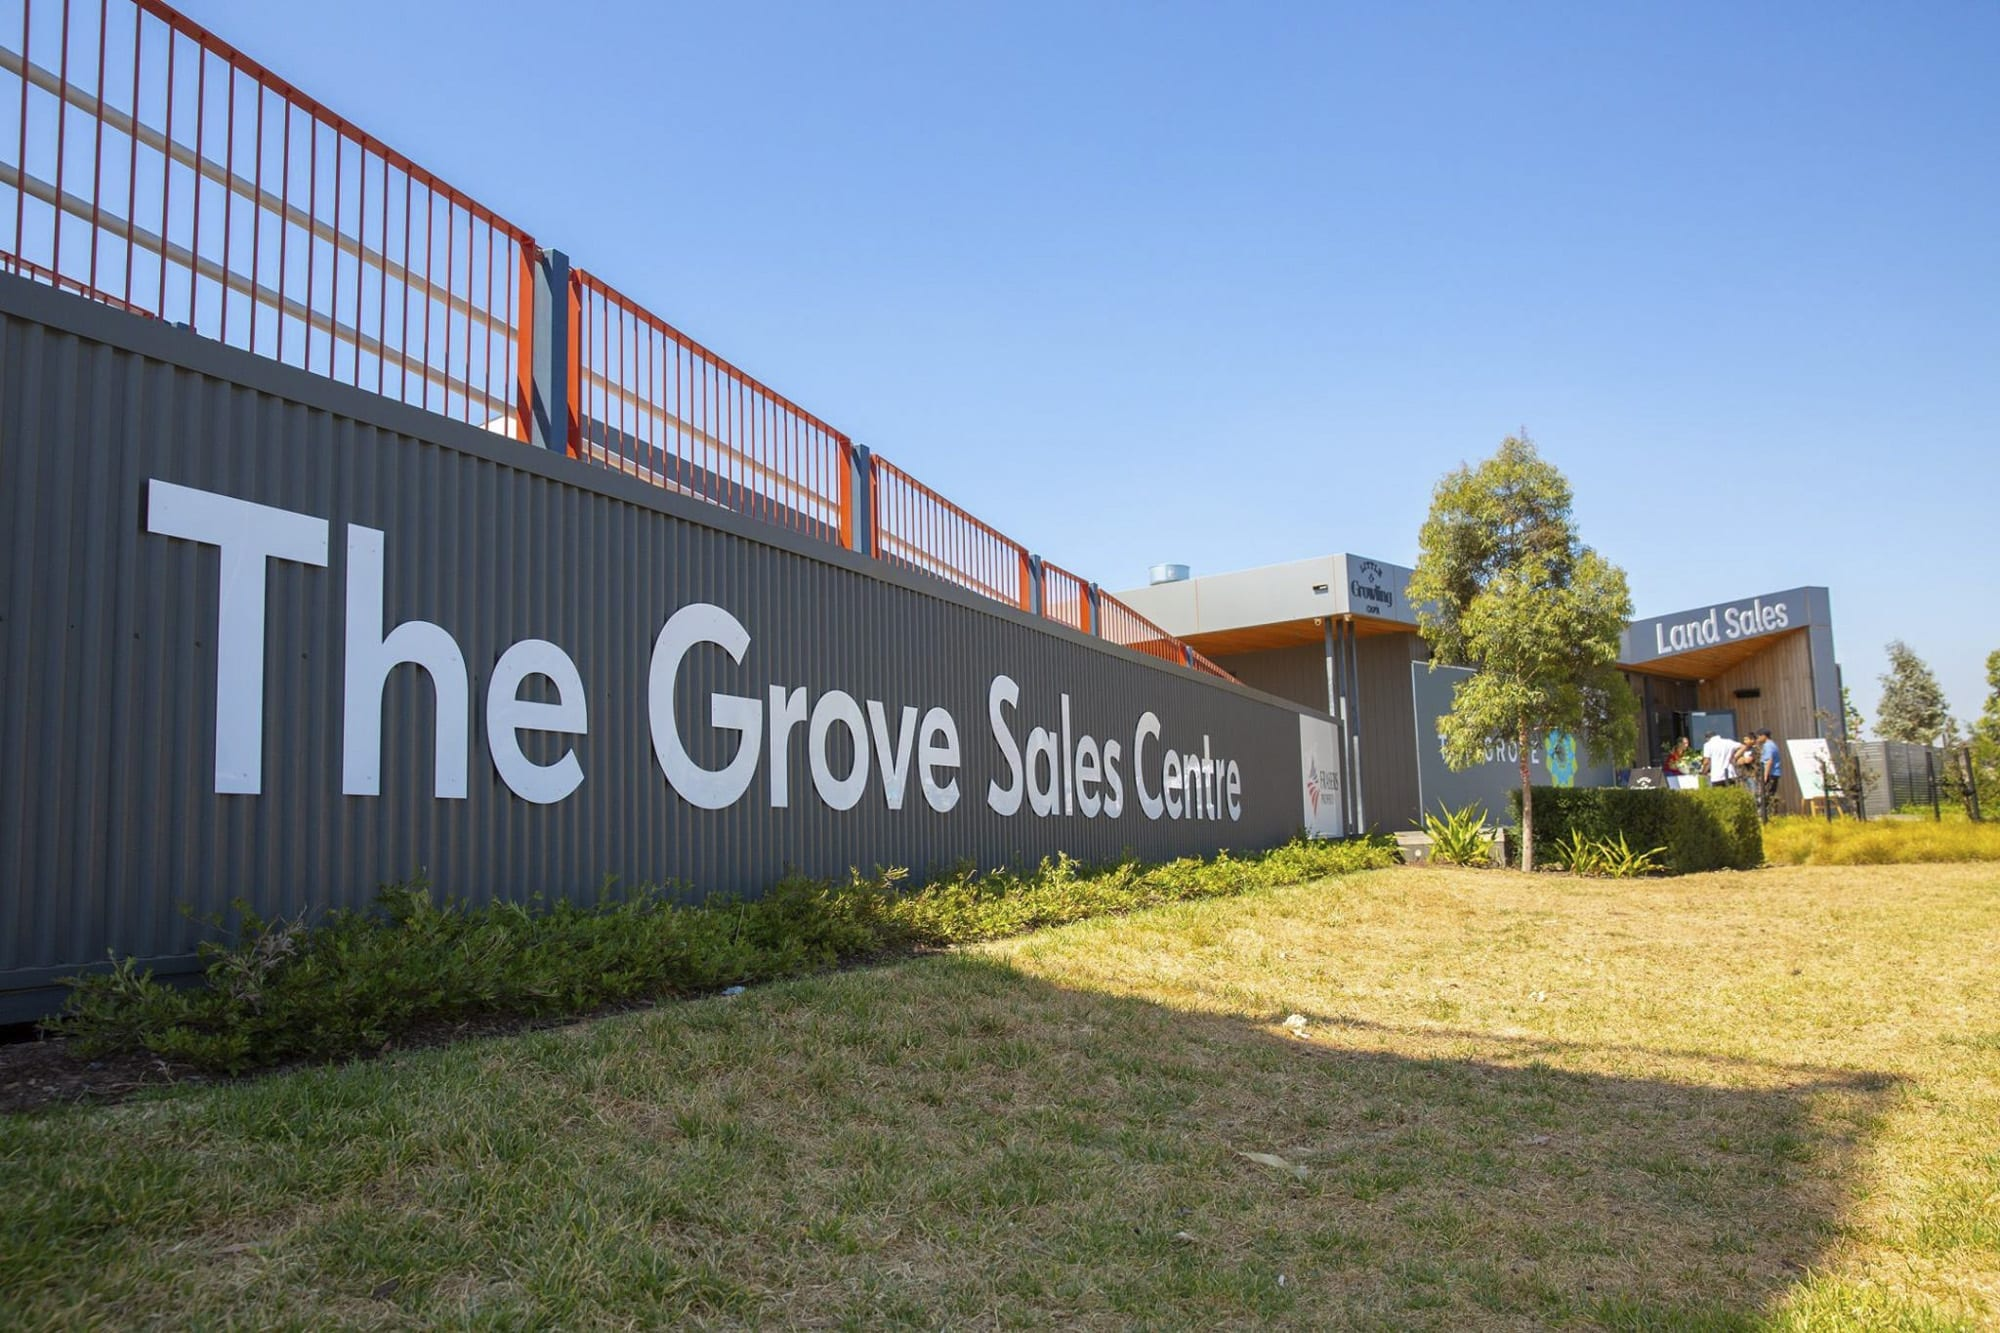 The Grove Image 02